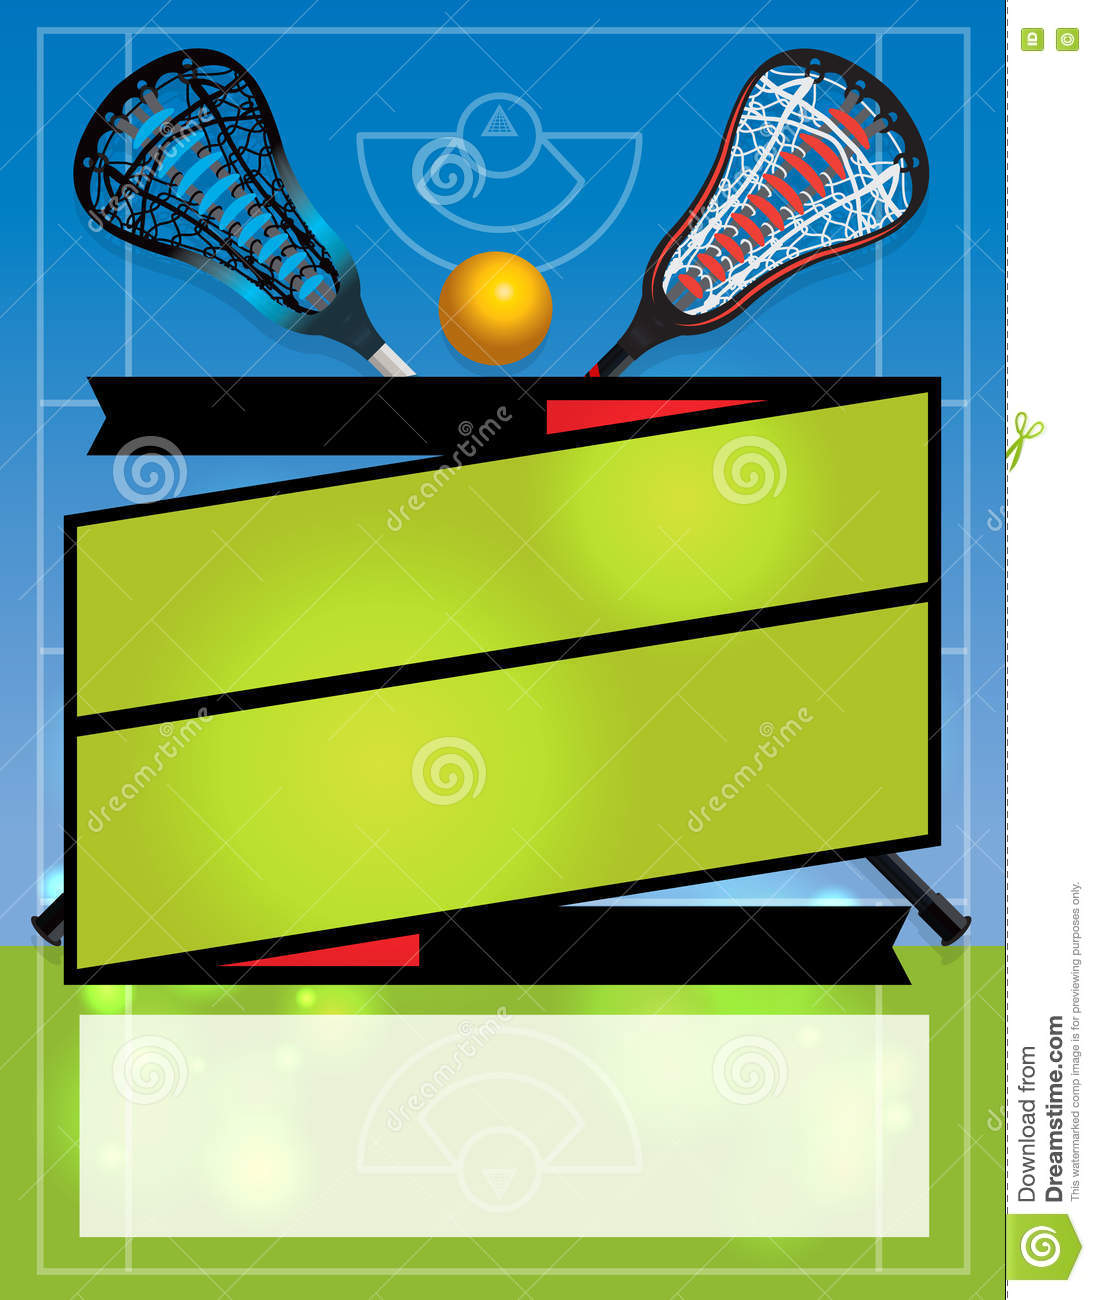 blank lacrosse flyer background stock vector illustration of match